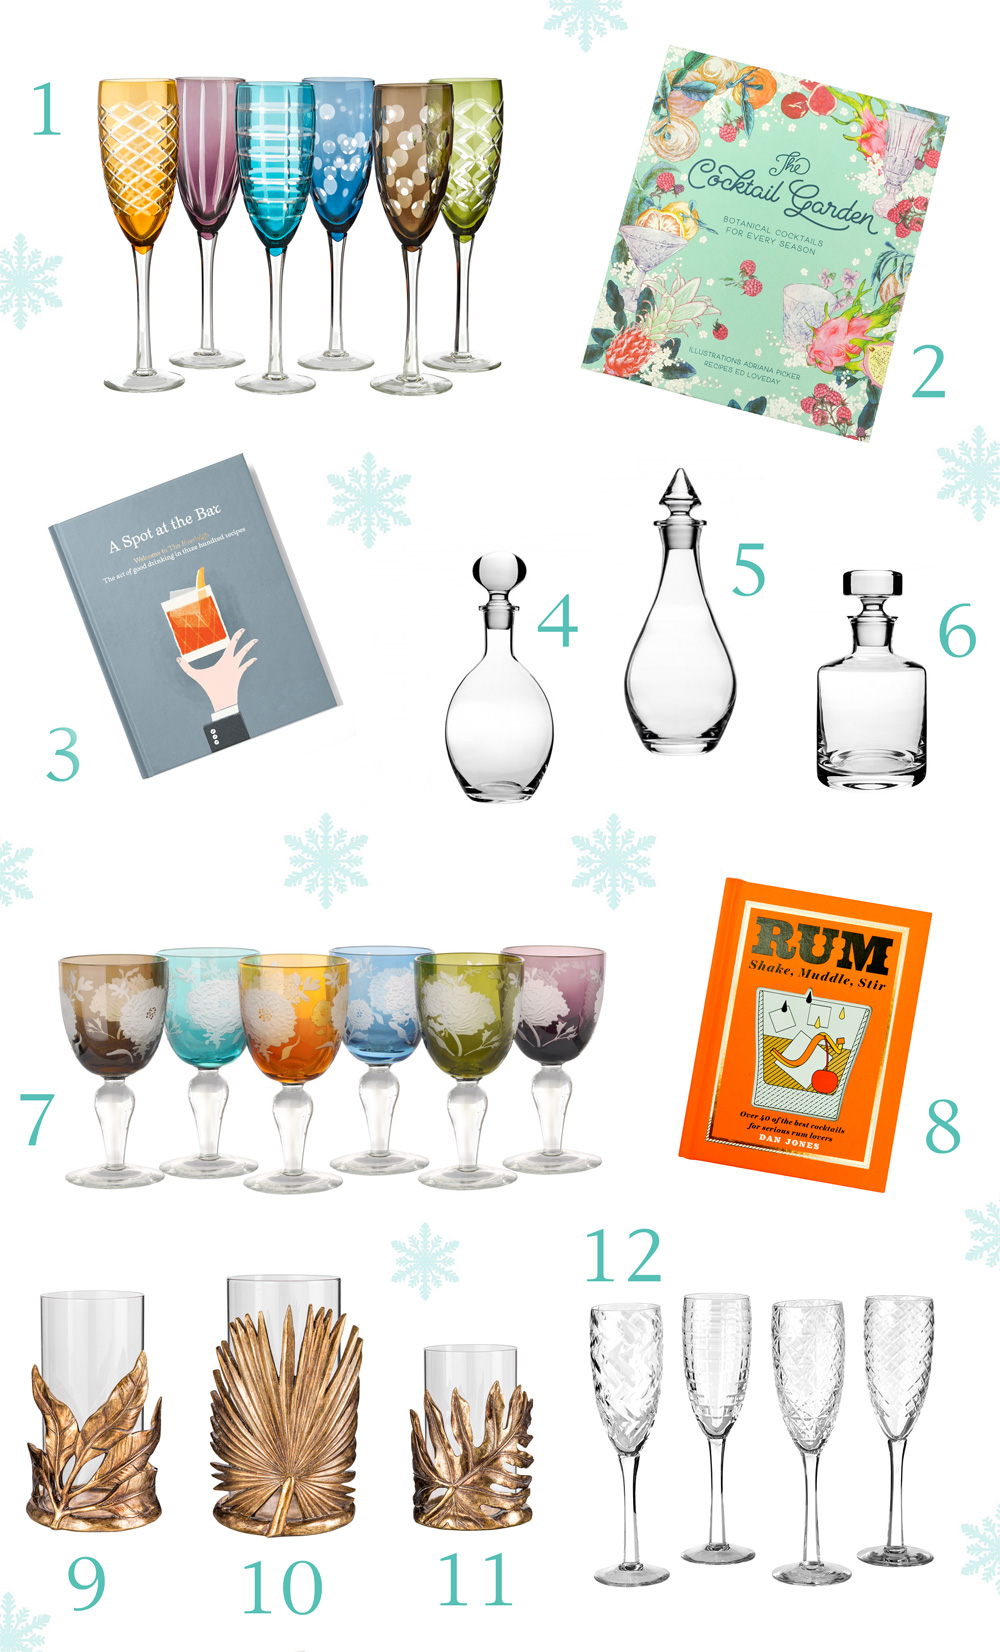 Jenny Blanc - Fabulous Gifts and Decorations 2017 Gift Guide1